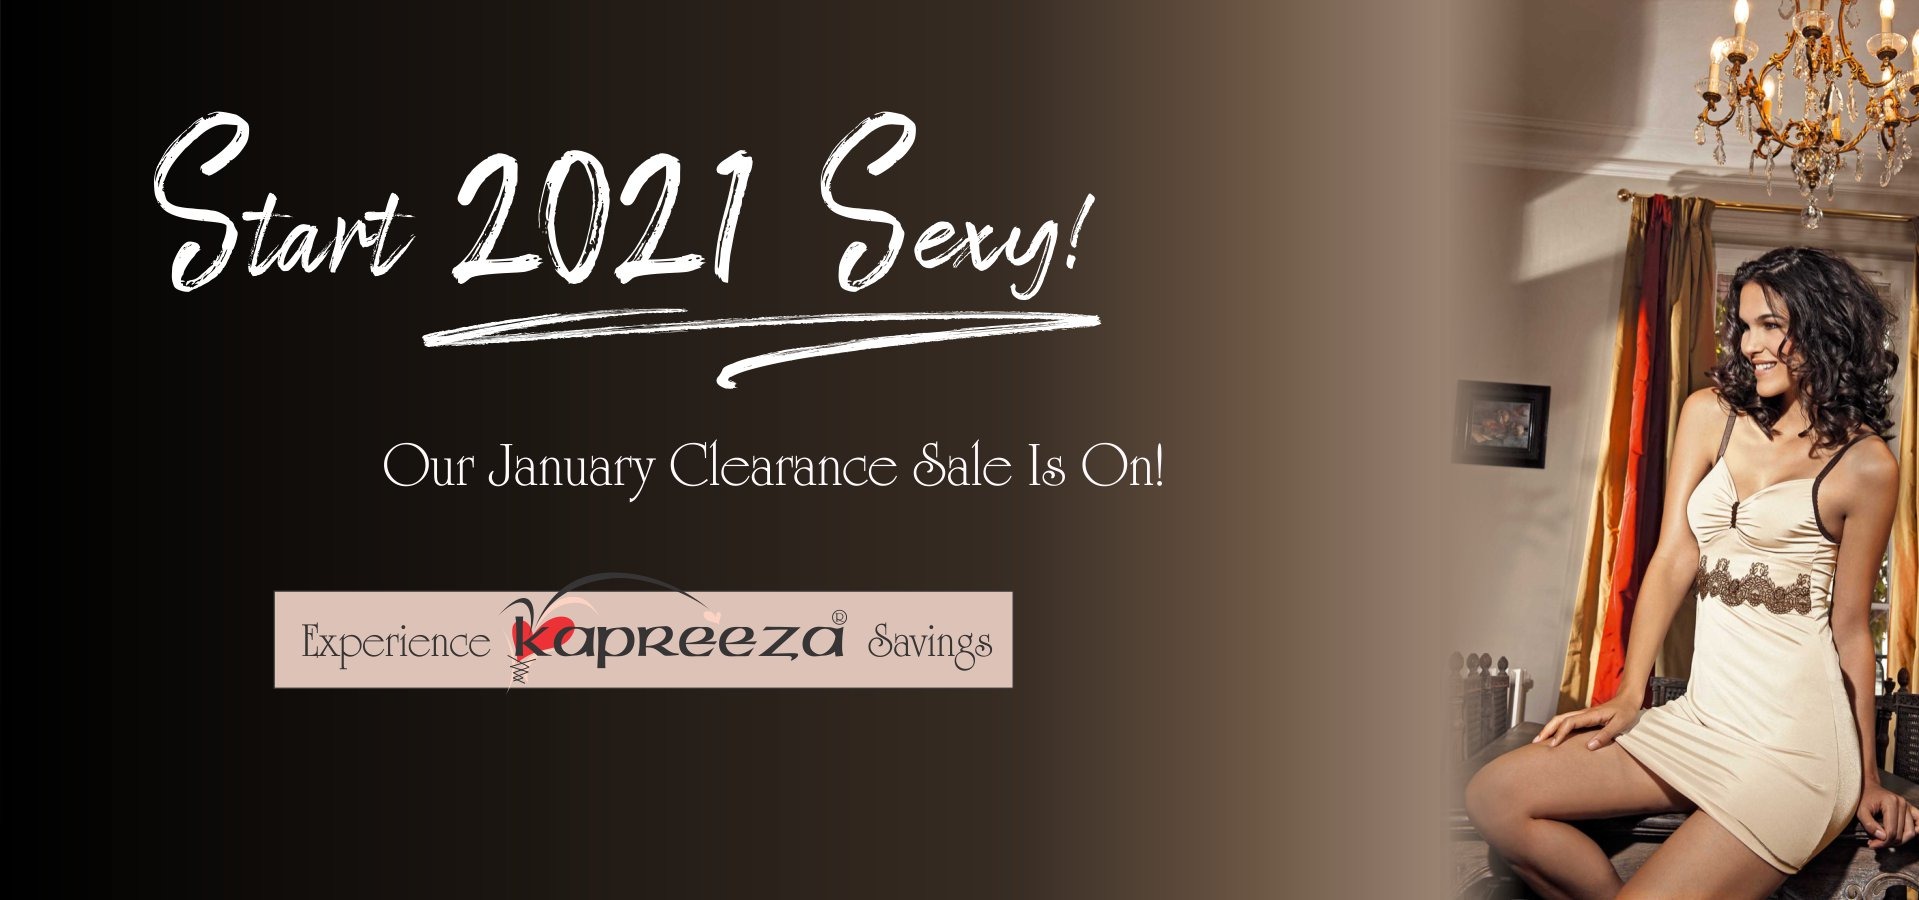 January Clearance Sale